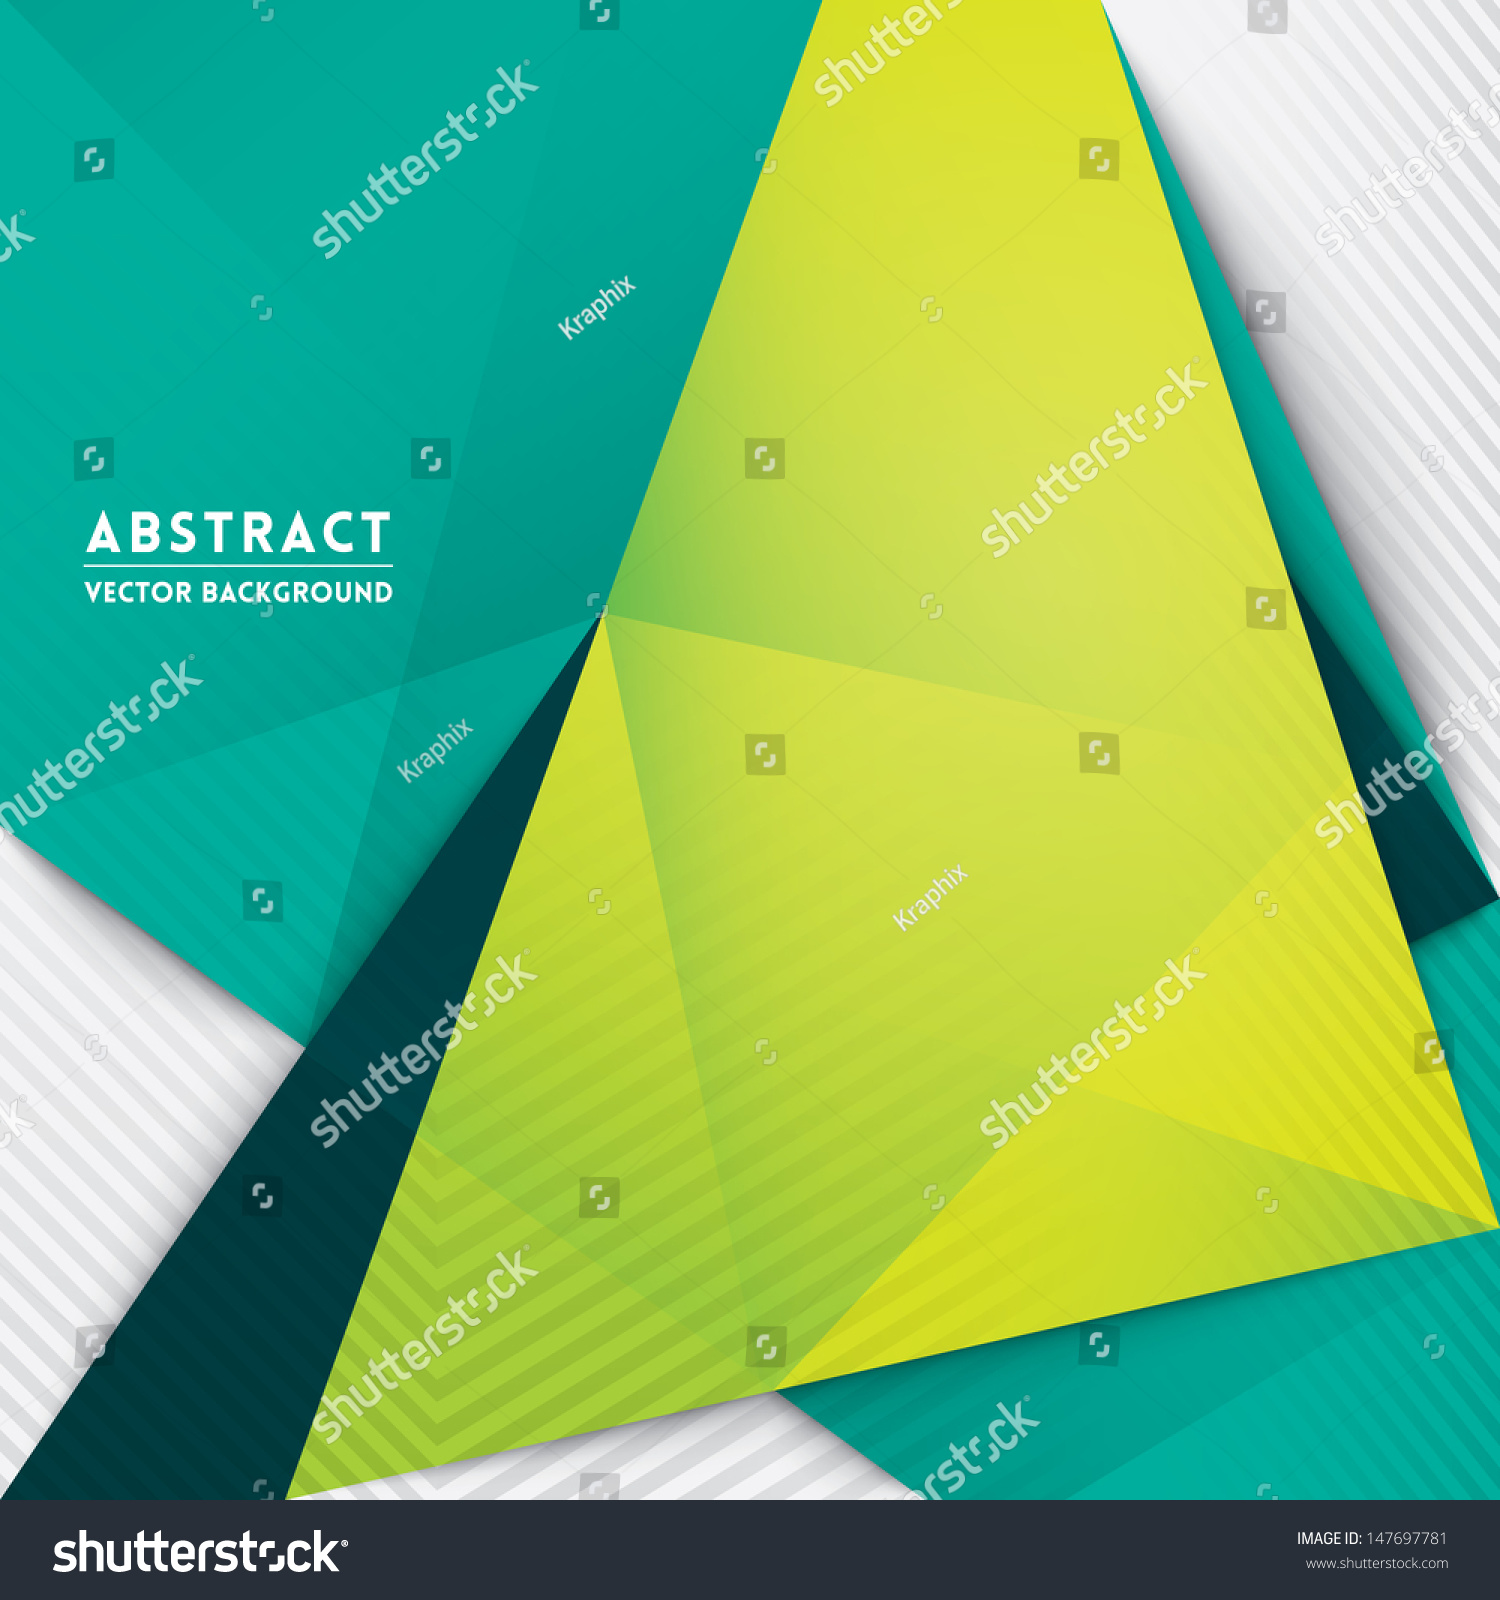 Abstract Book Cover Background : Abstract triangle shape background for web design print